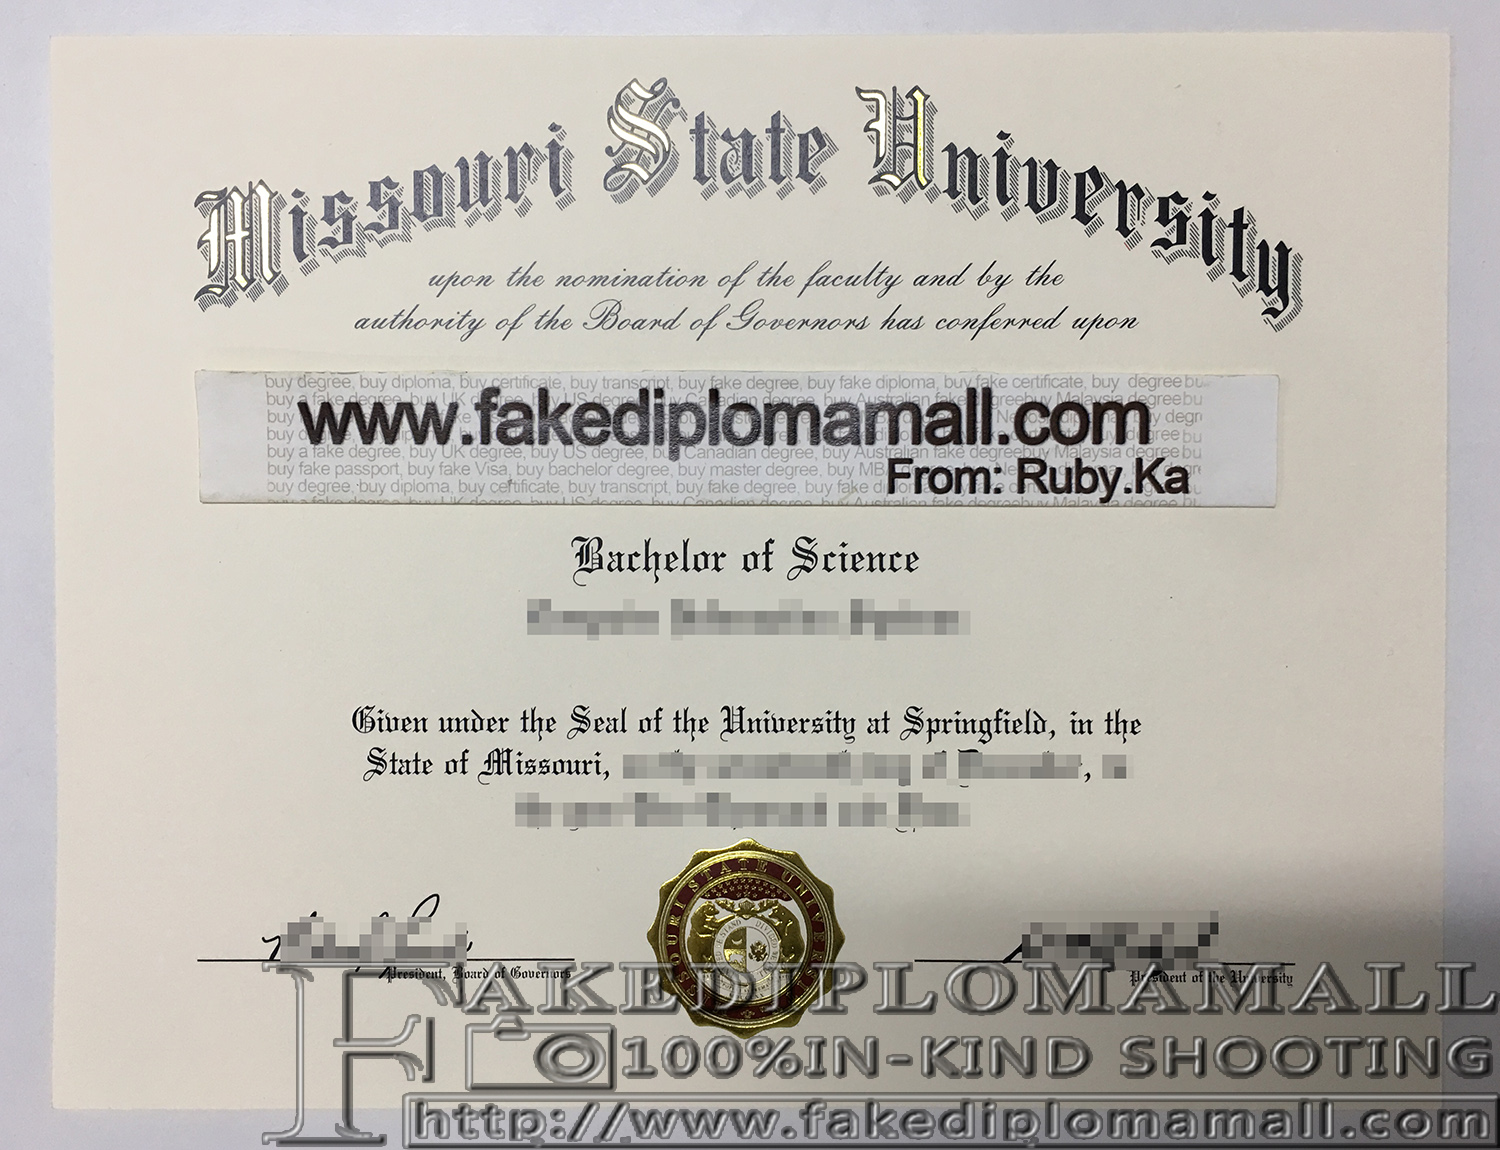 How to buy a fake diploma online: 2017